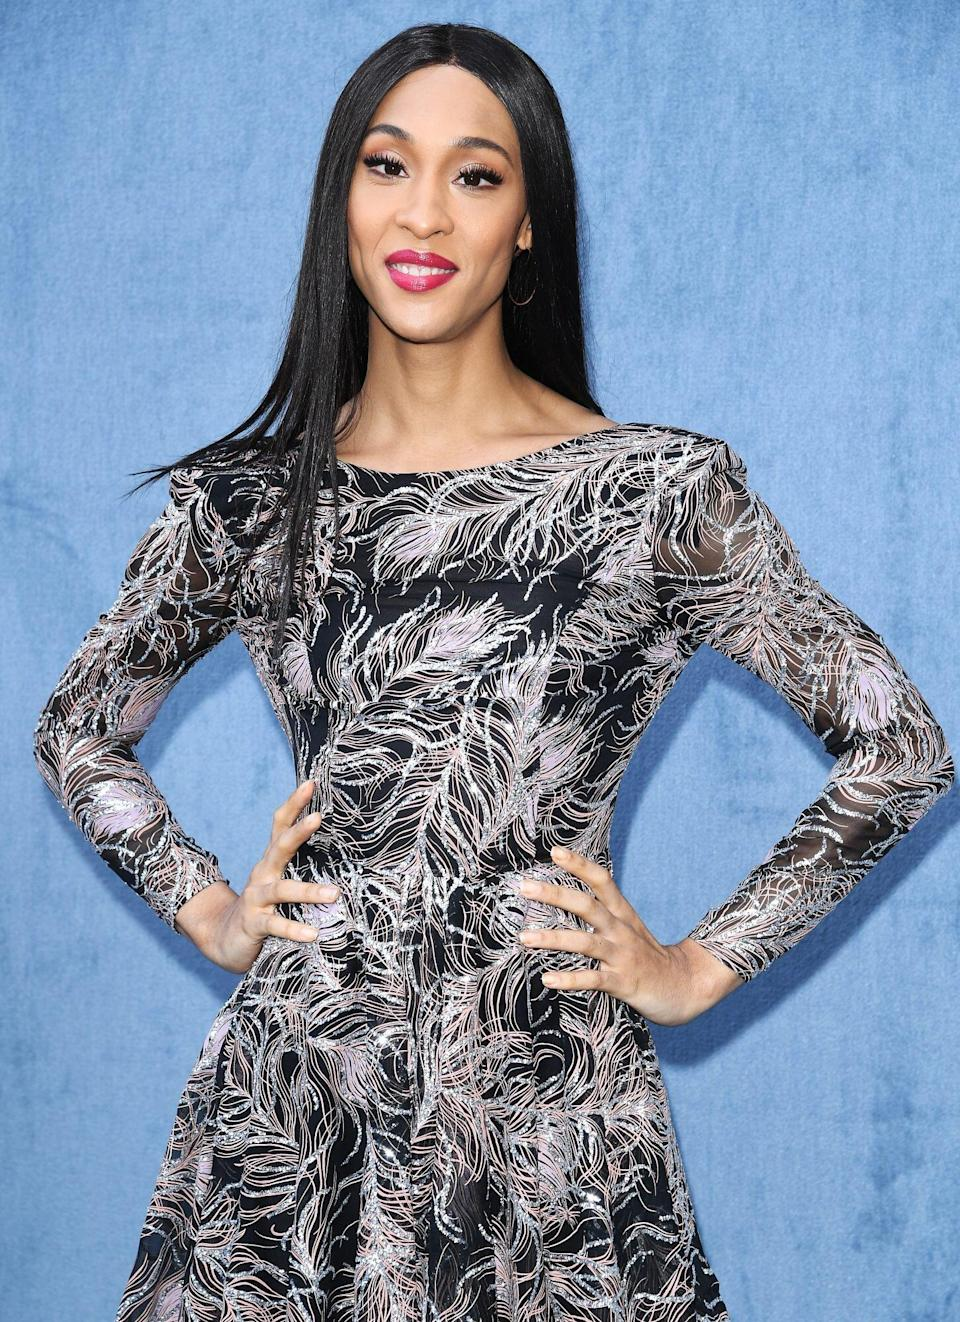 Mj Rodriguez attends the Etro fashion show on February 21, 2020 in Milan, Italy